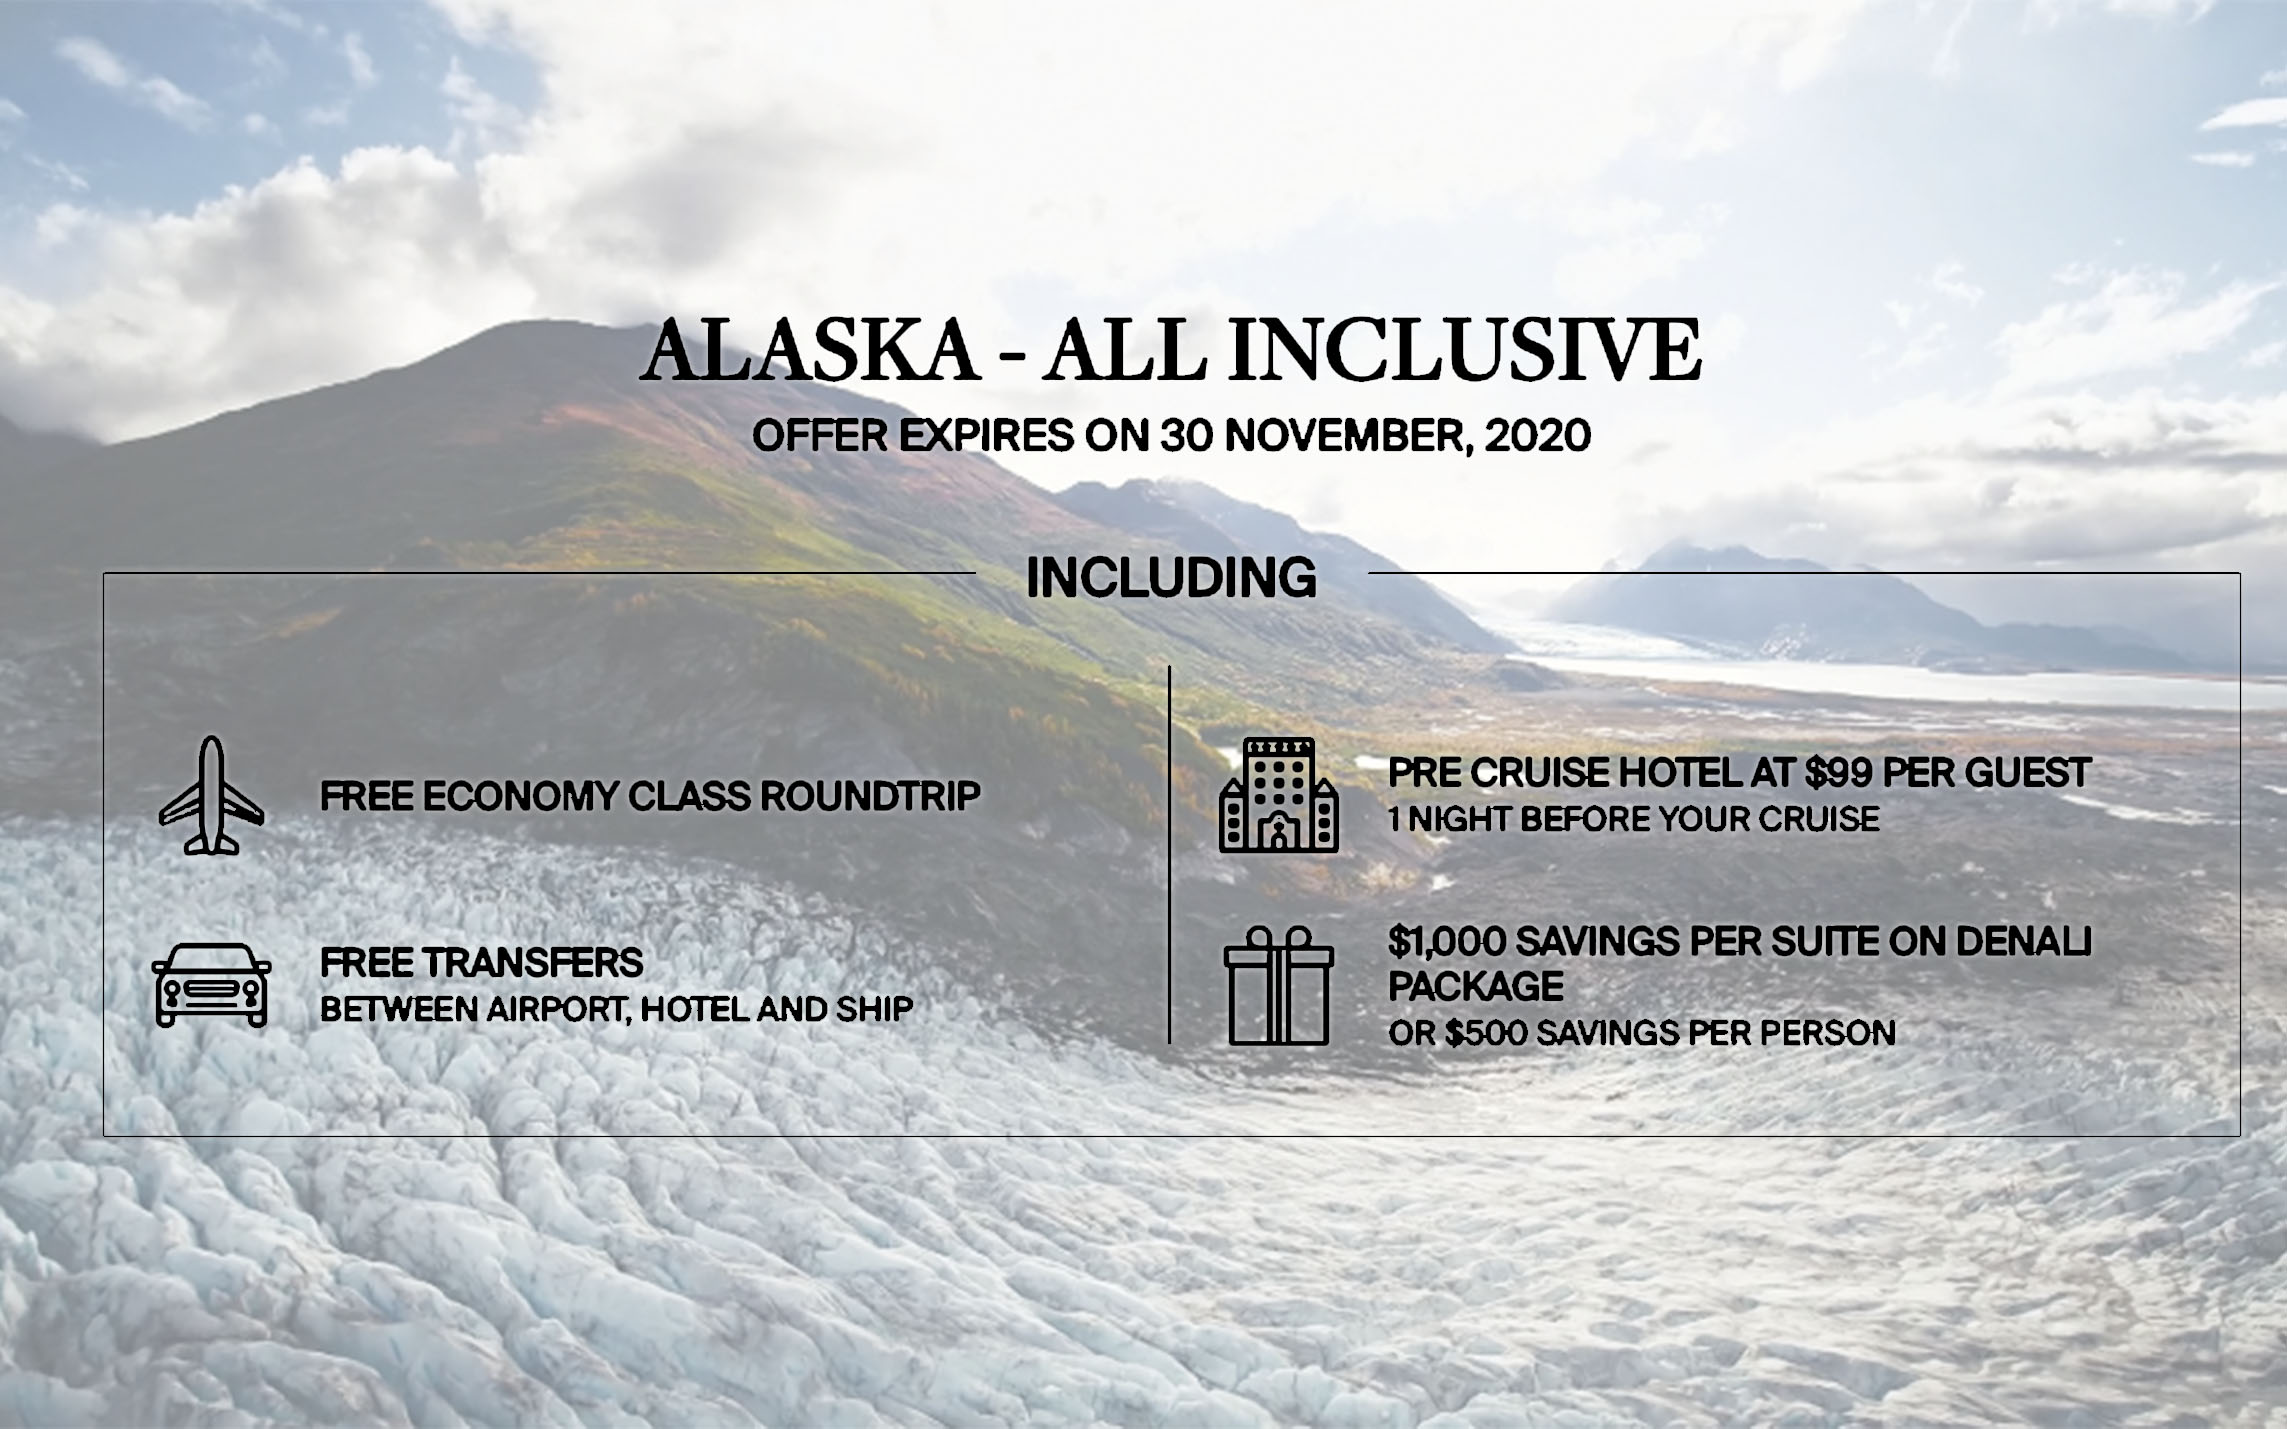 Travel to Alaska with Silversea - Get Free Economy Class Roundtrip + Free Cruise Hotel + Free Transfers + Up to $1,000 Savings